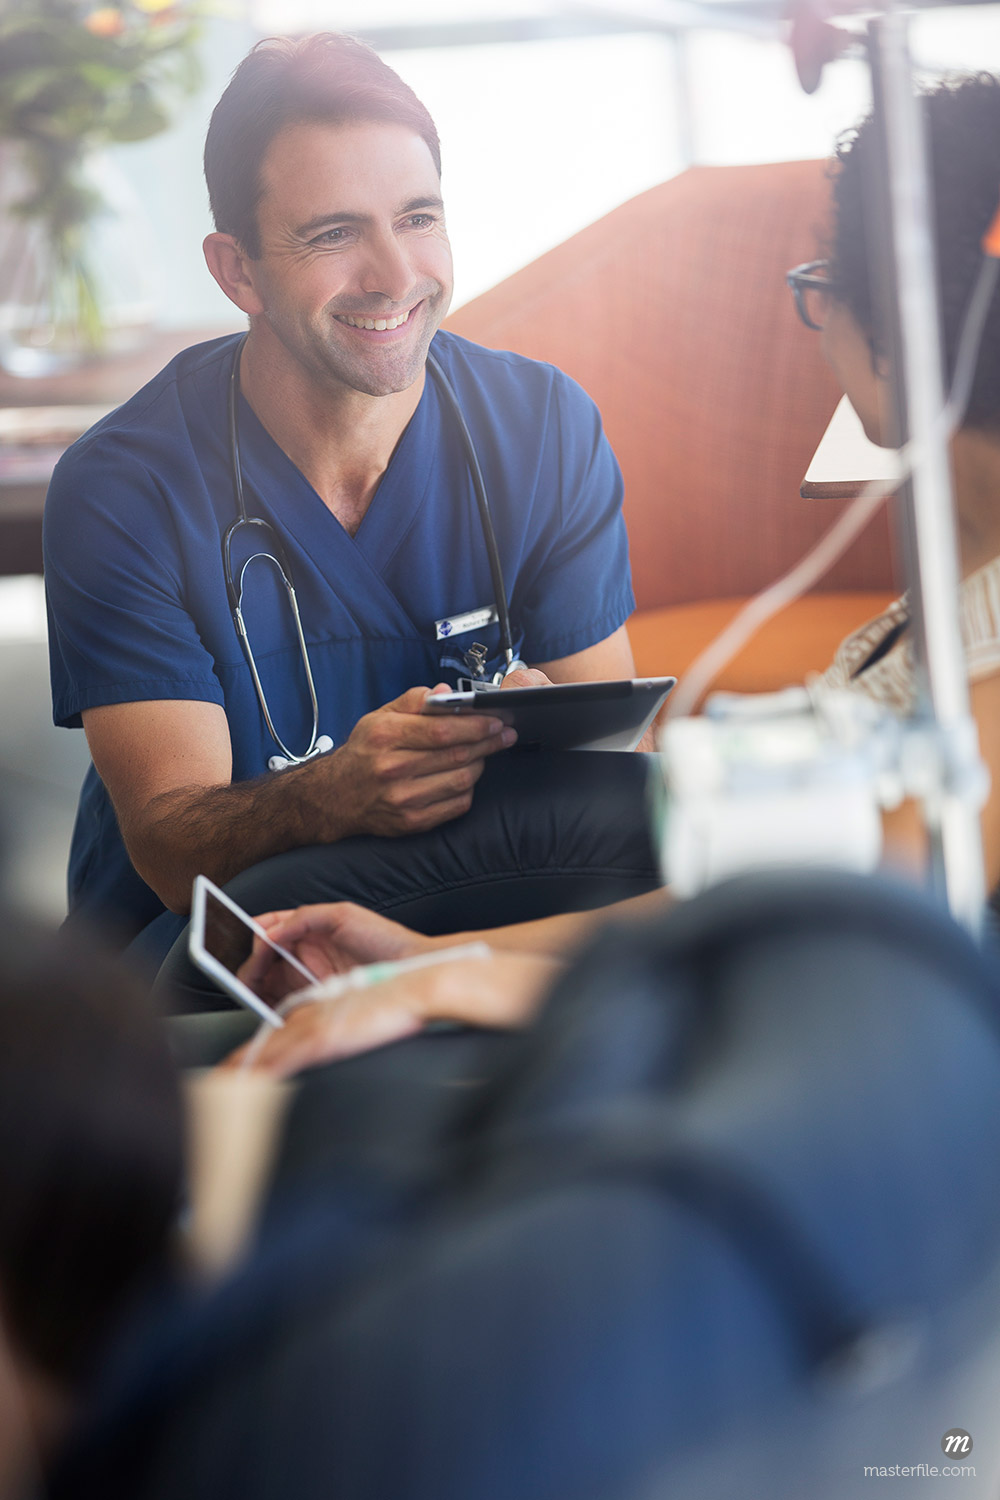 Doctor holding digital tablet,talking to patient © Masterfile